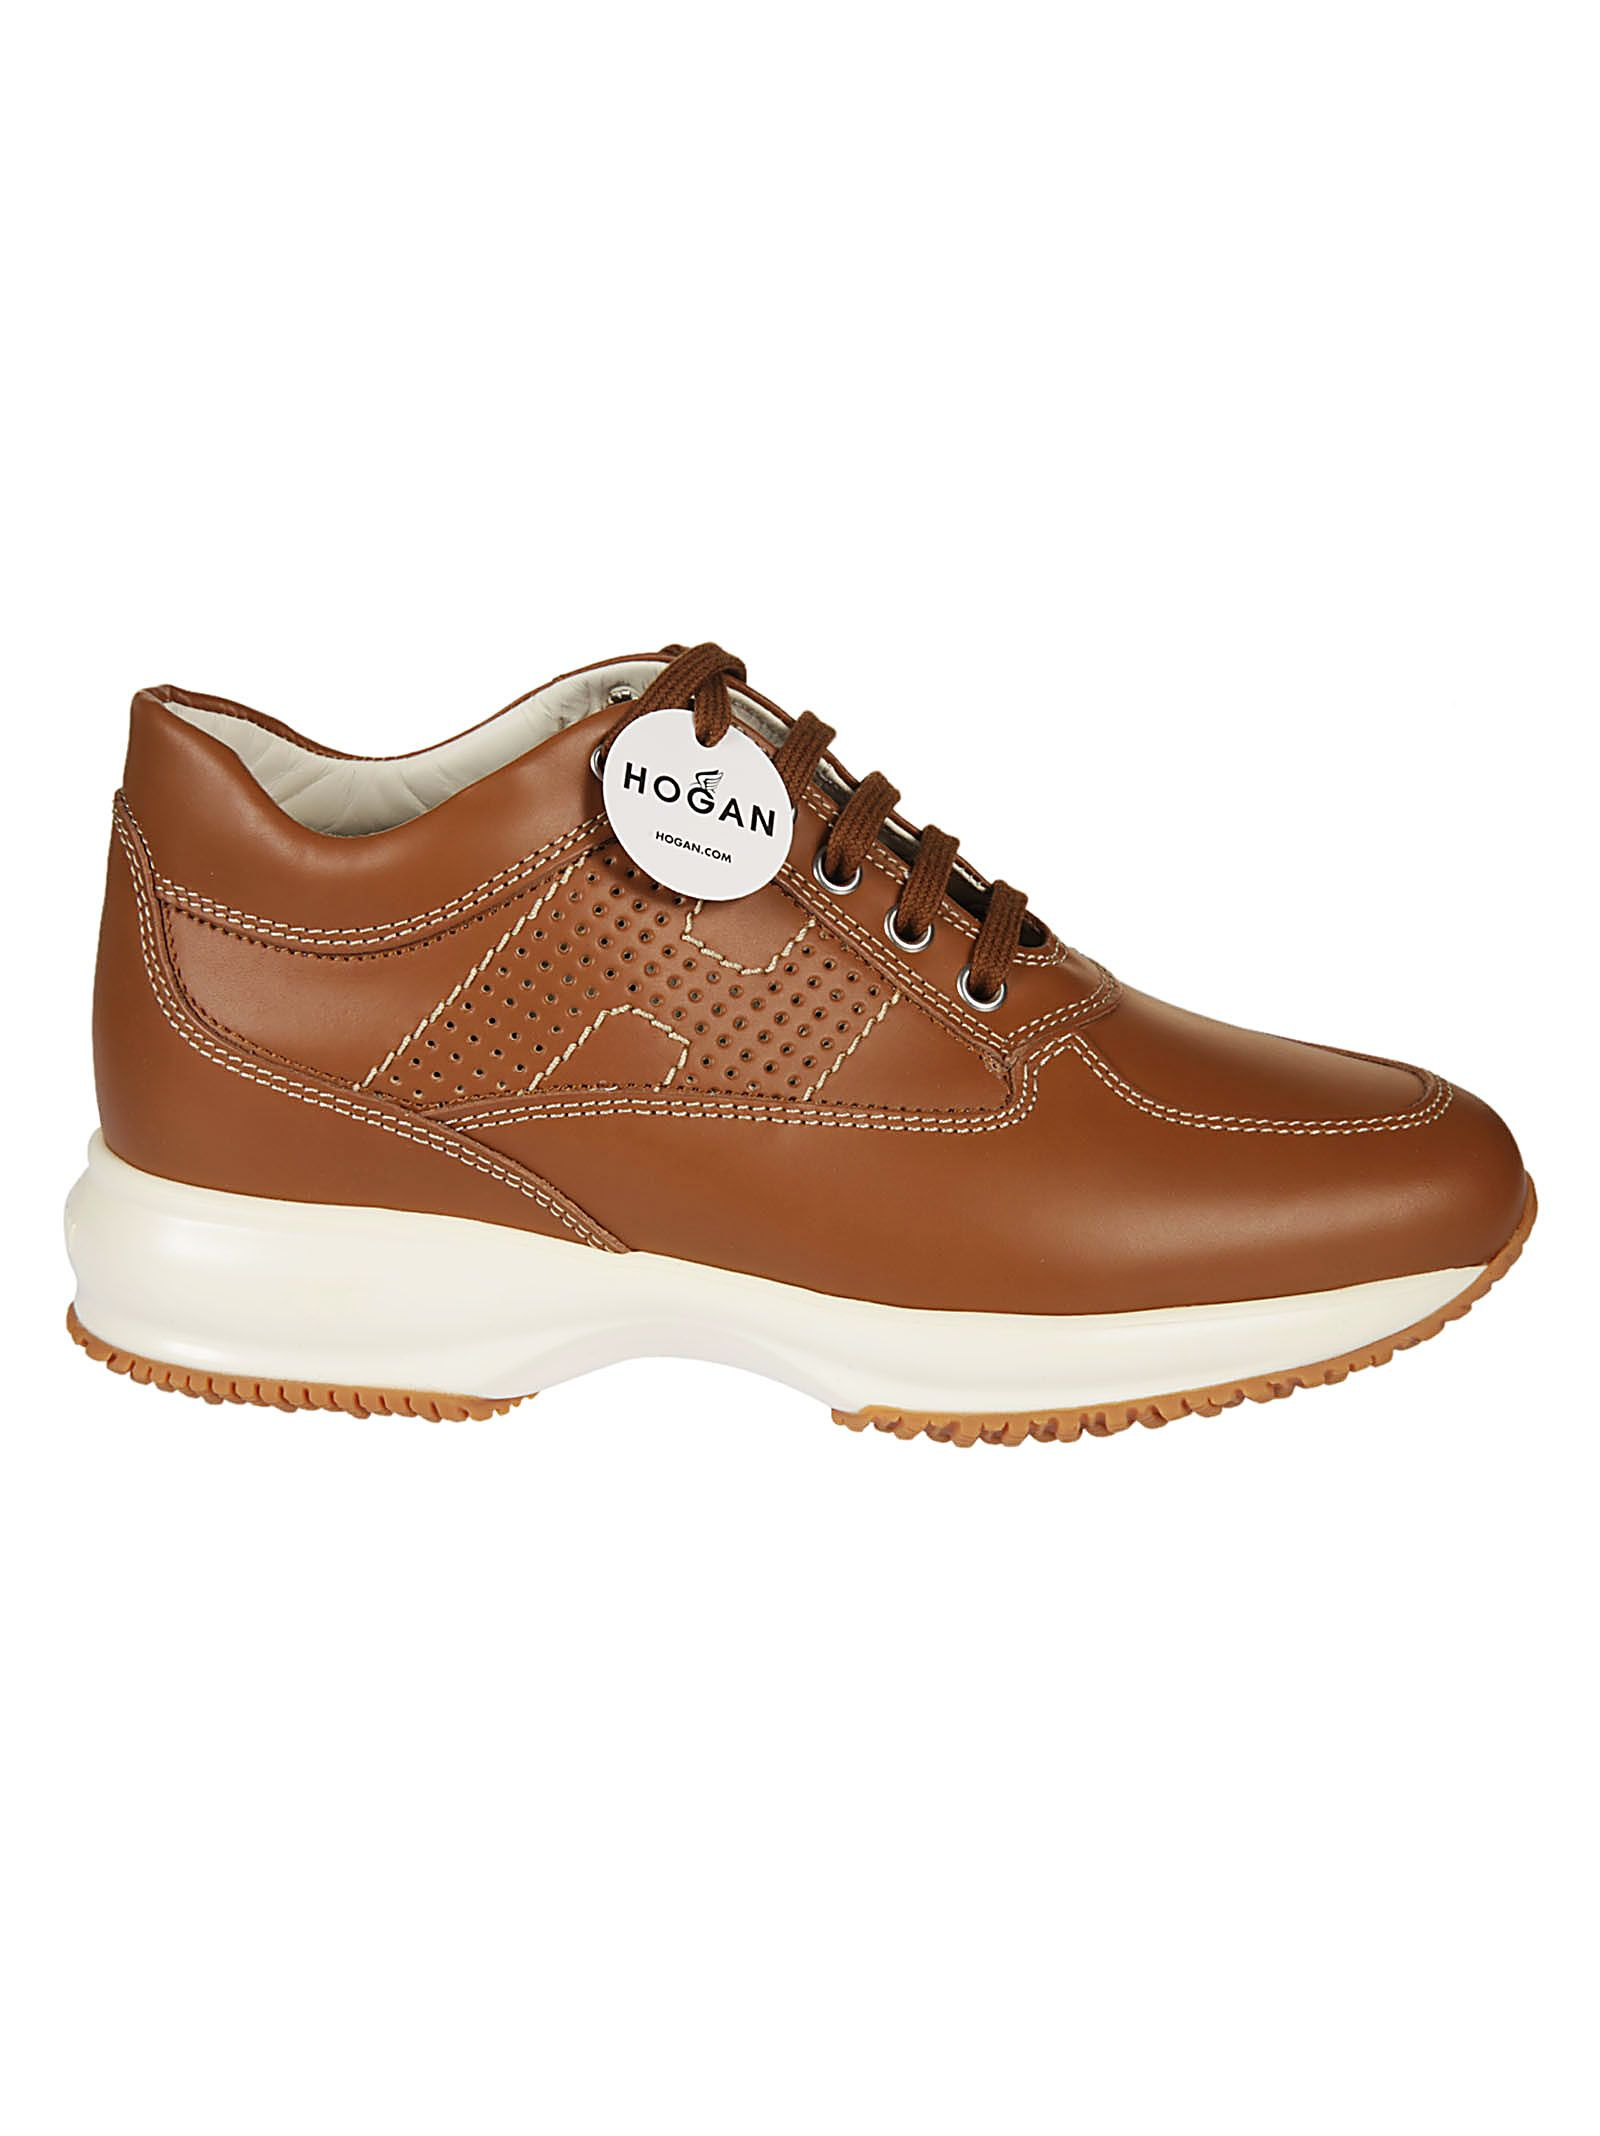 Hogan Sneakers 'interactifs' - Marron DDEeqL26fh